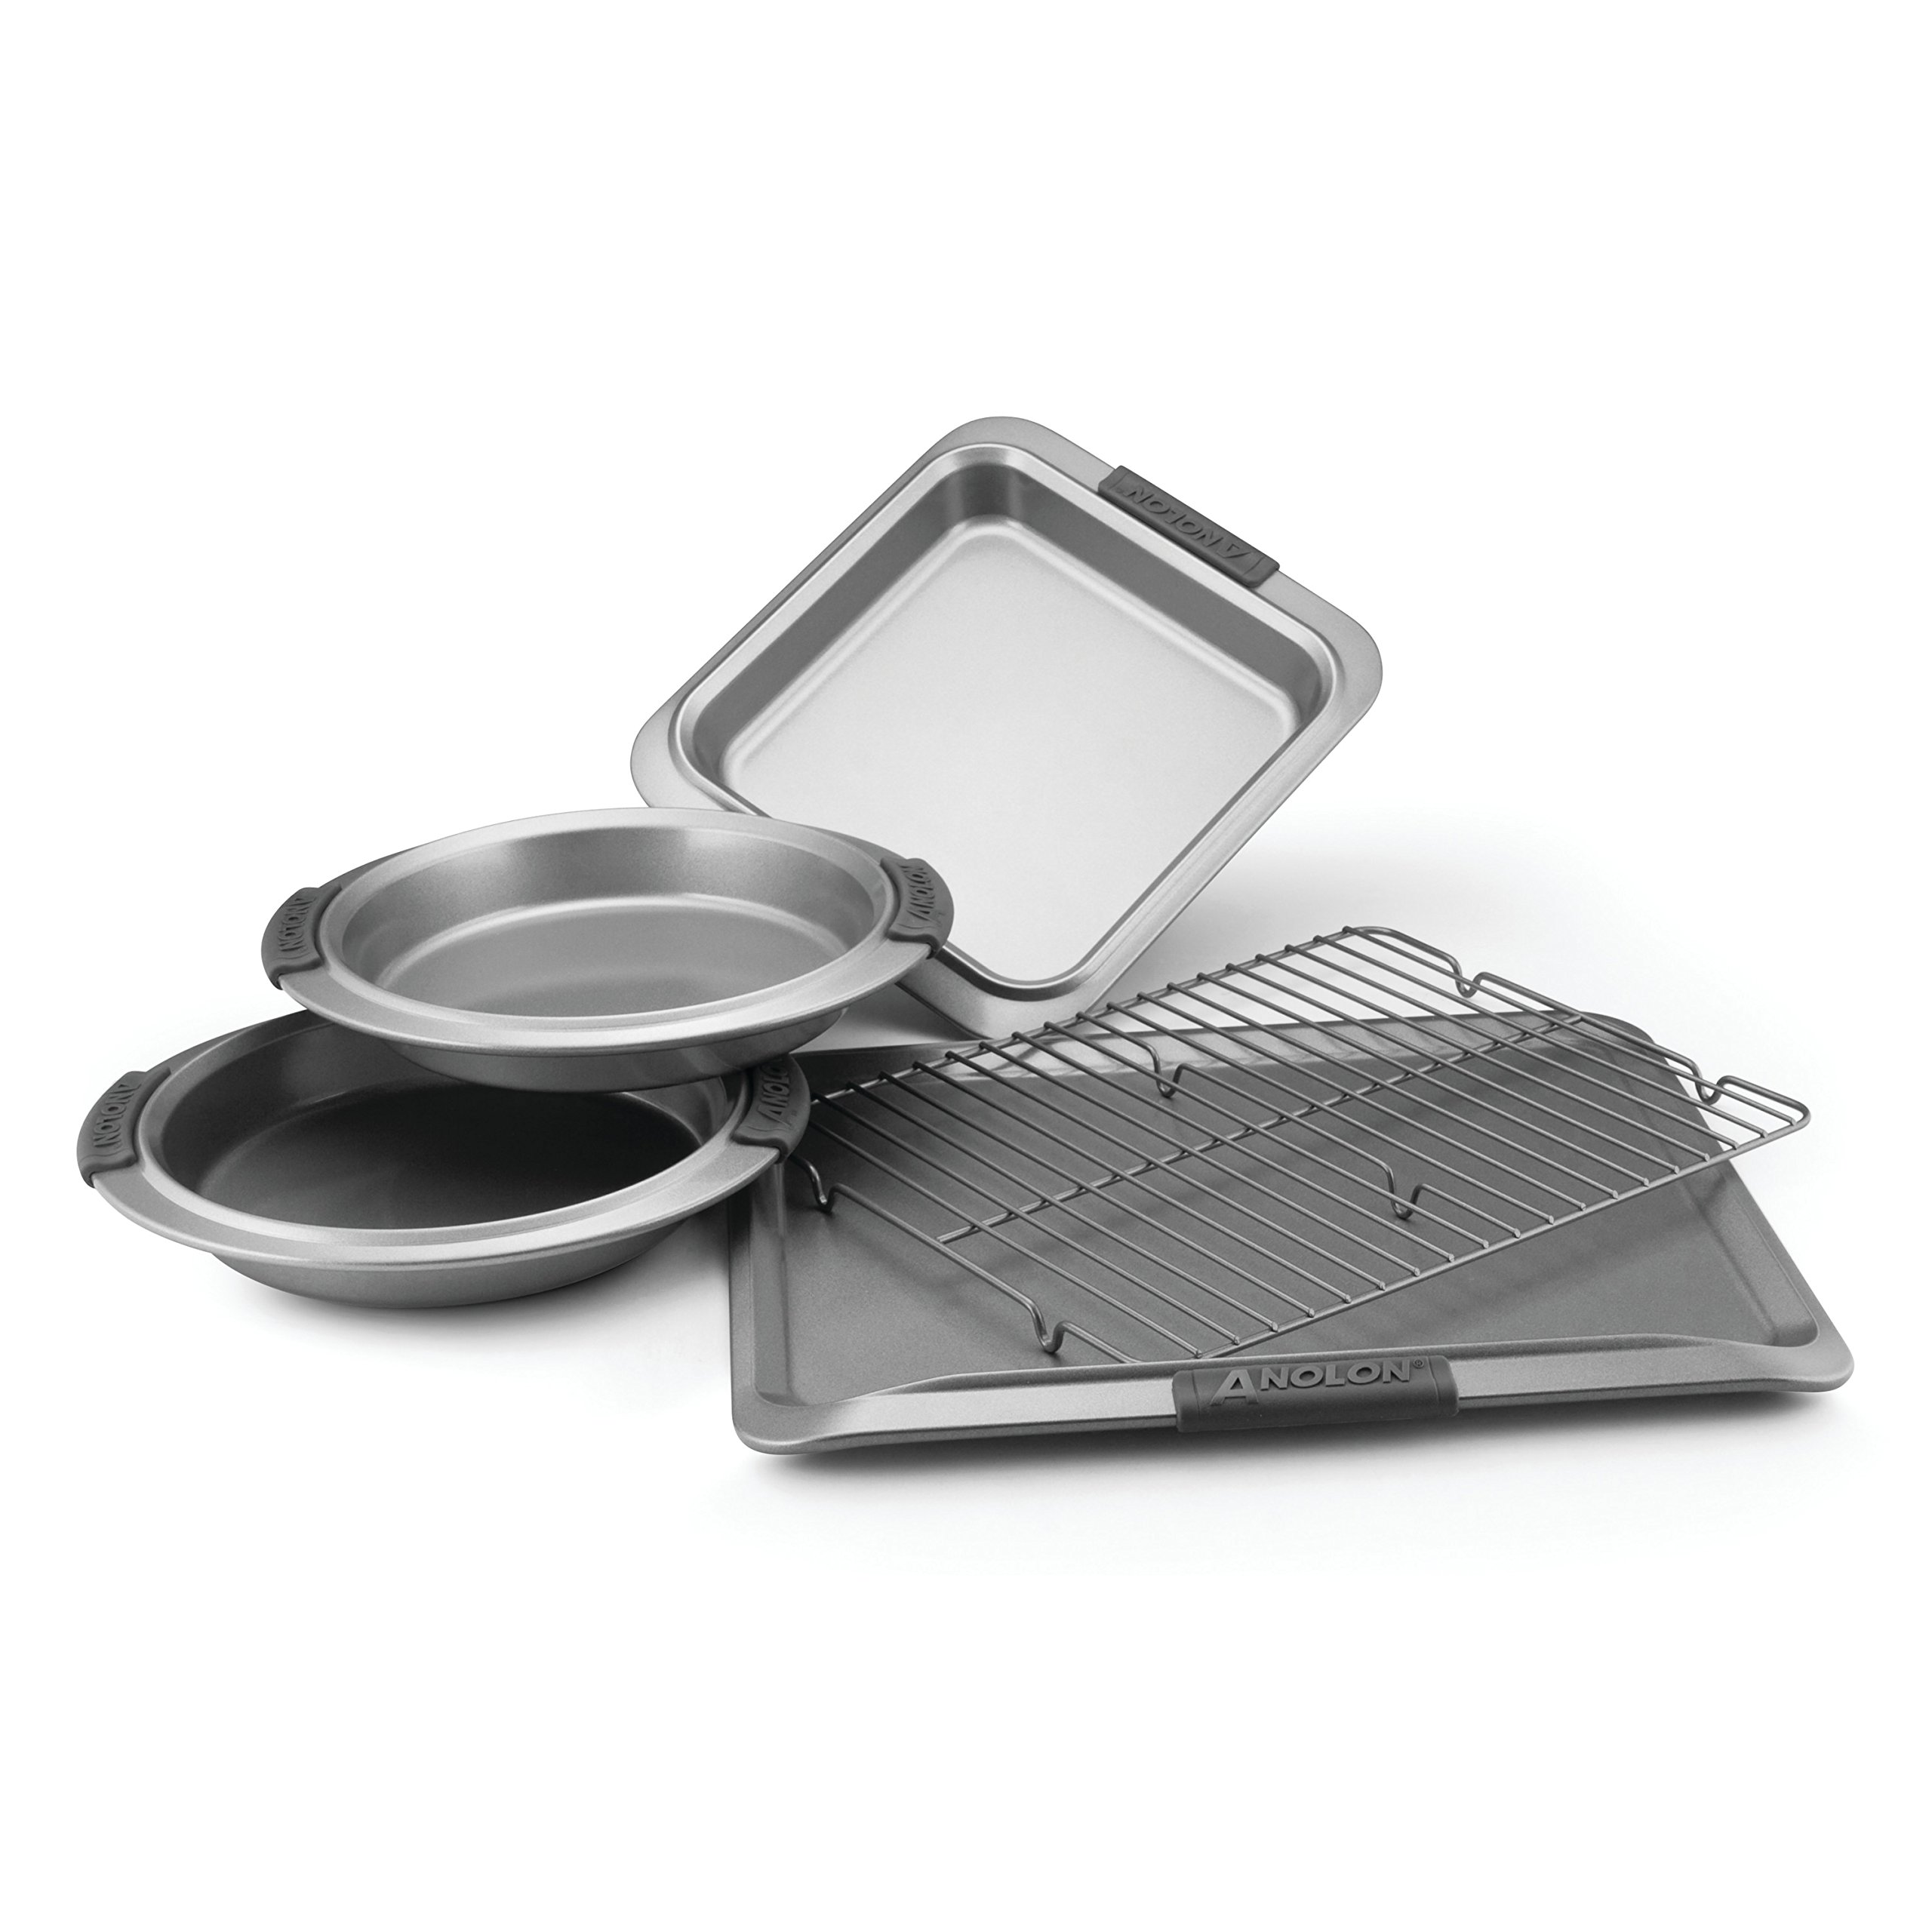 Anolon Advanced Nonstick Bakeware 5-Piece Bakeware Set with Silicone Grips, Gray